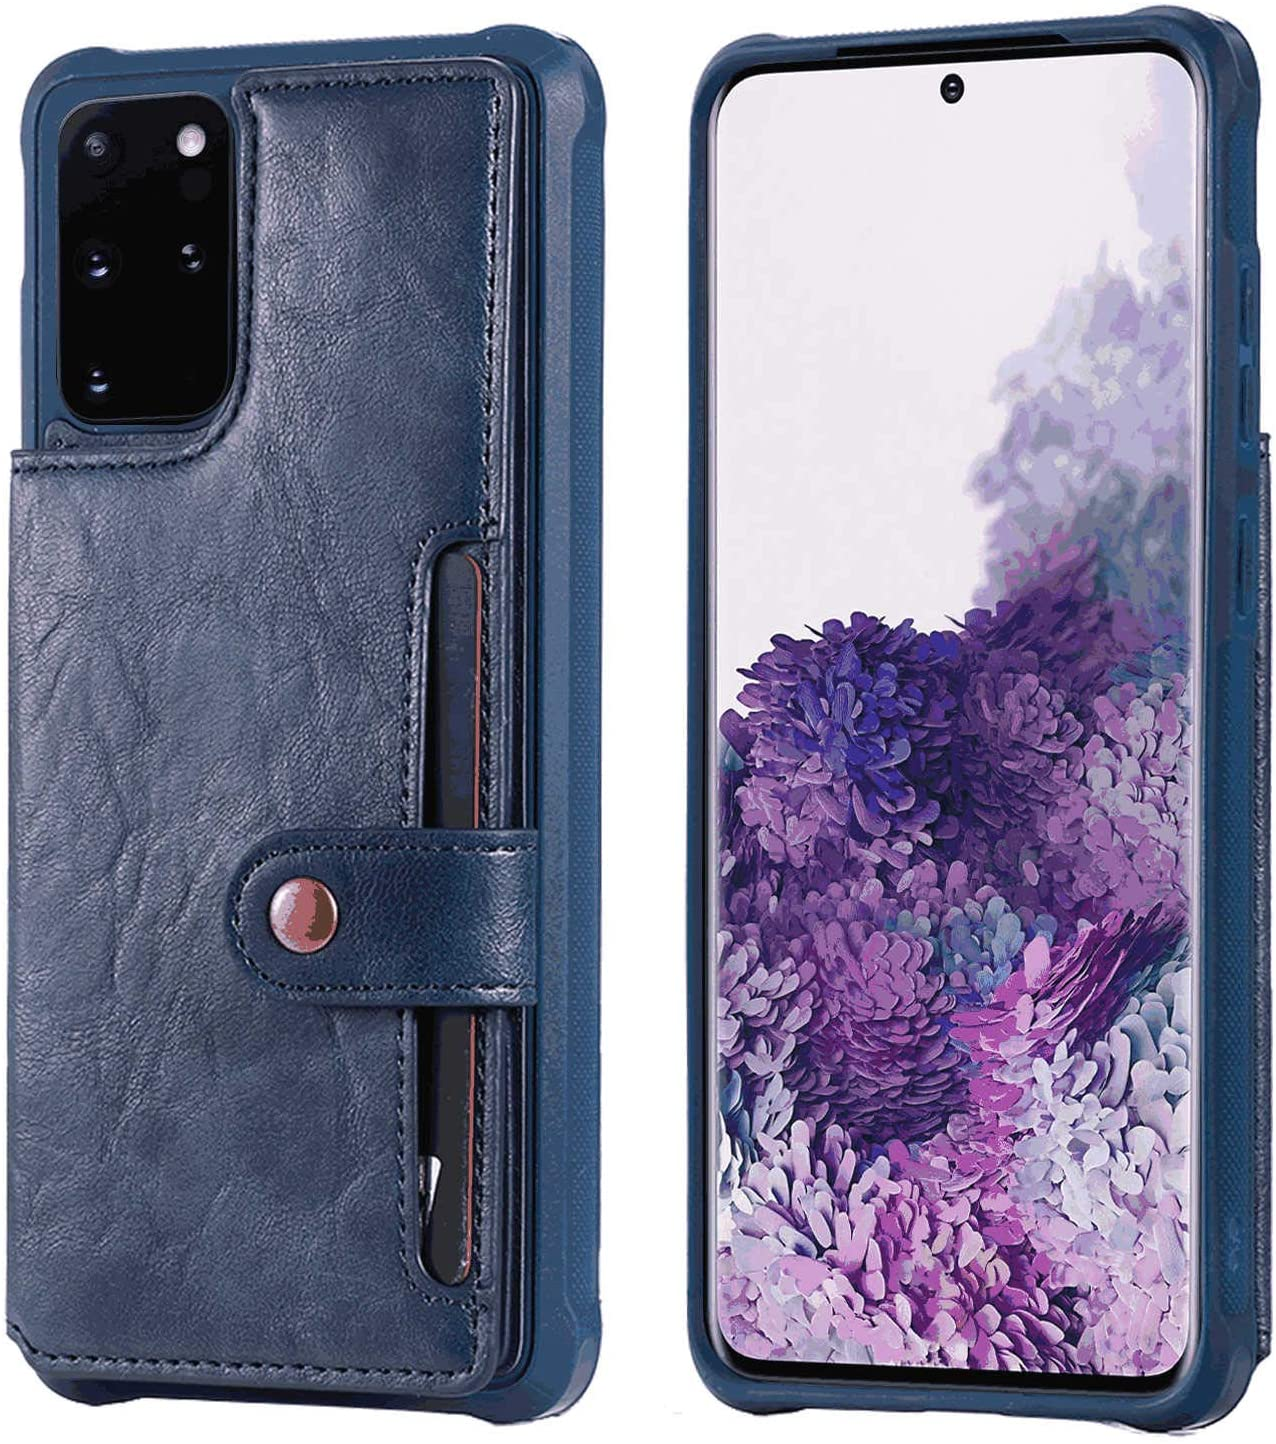 OOALUCK Leather Cover Compatible with iPhone Xs Max, Extra-Shockproof Card Holders Kickstand Blue Wallet Case for iPhone Xs Max